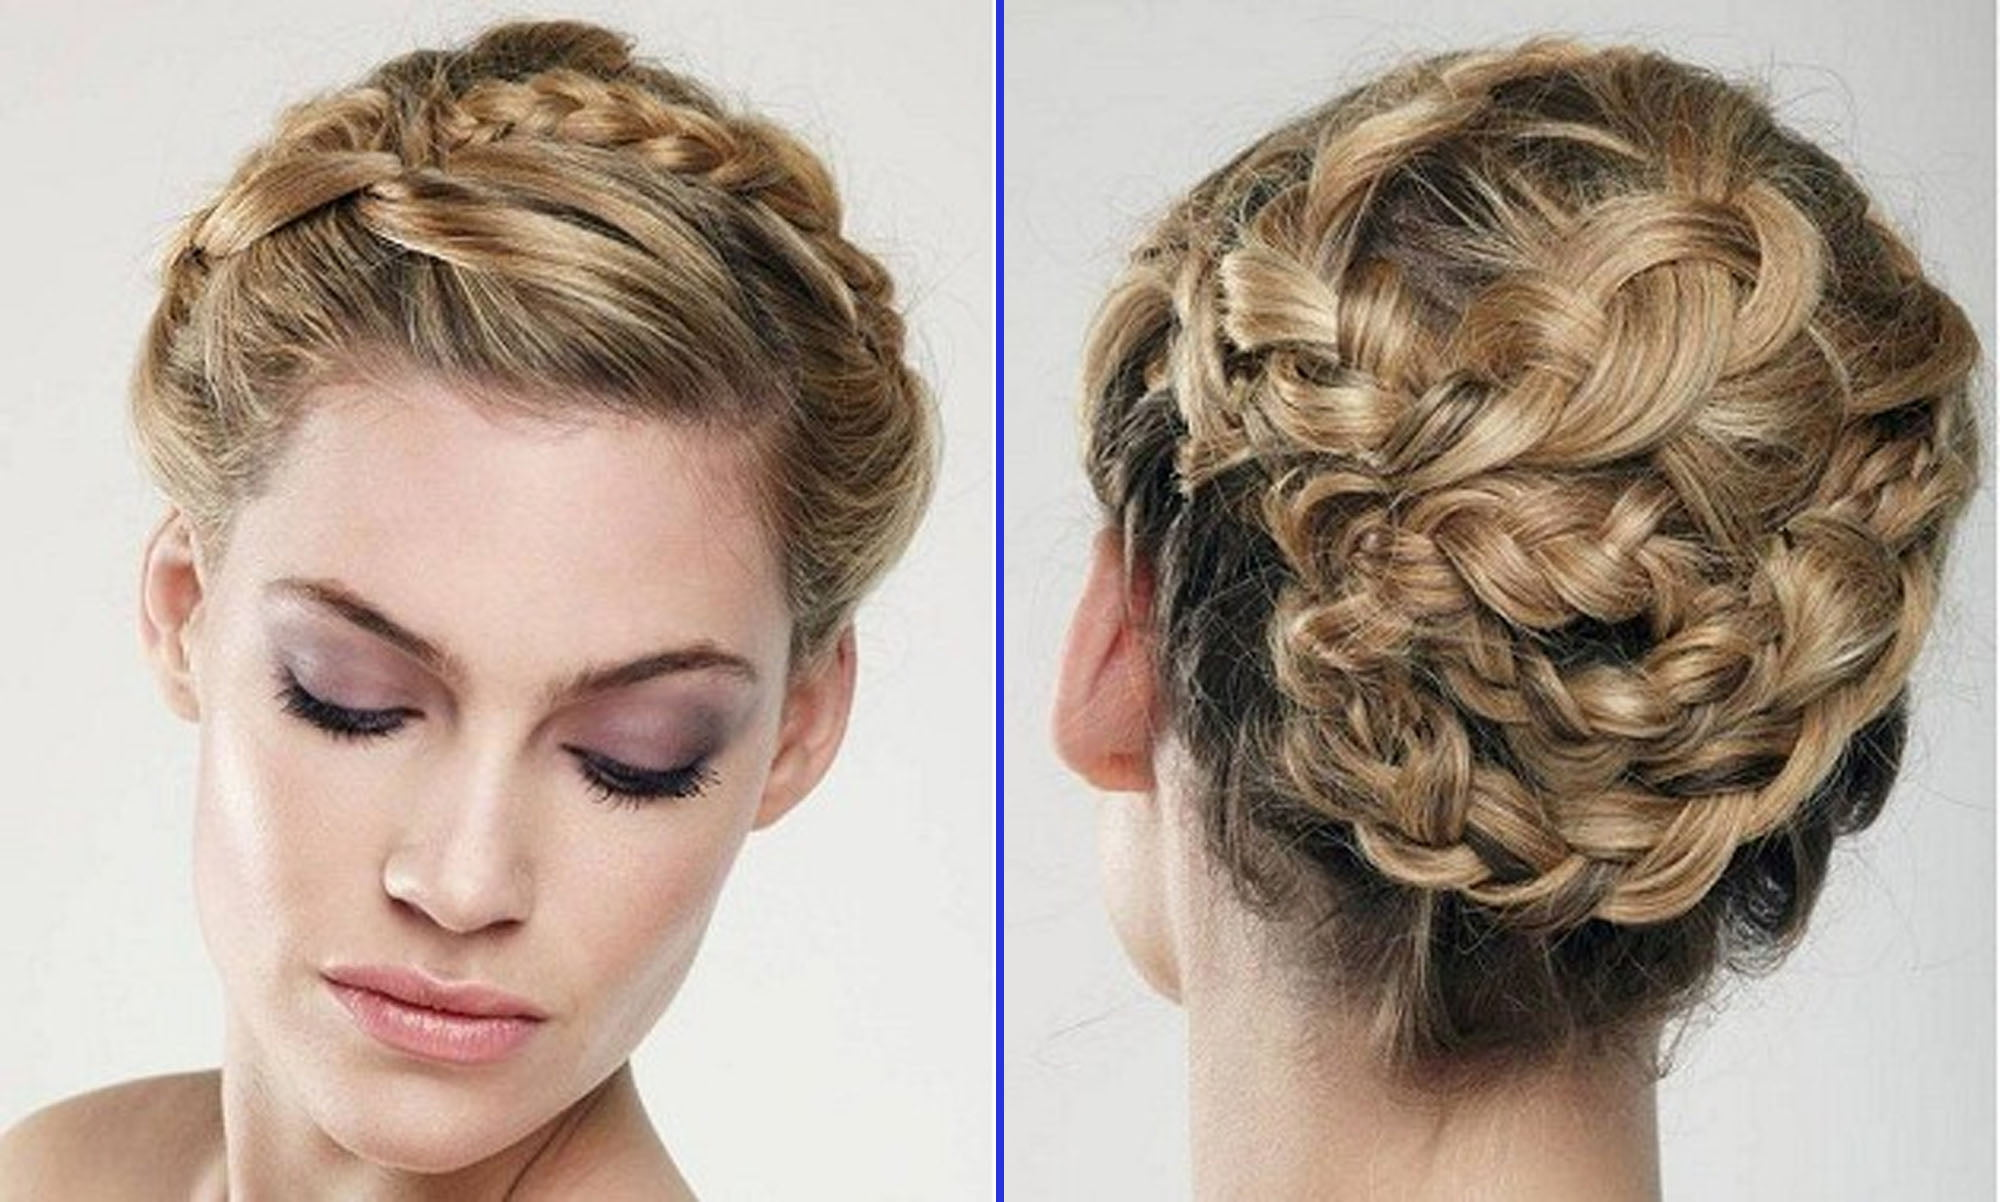 11 Best Braided Hair Images 2017